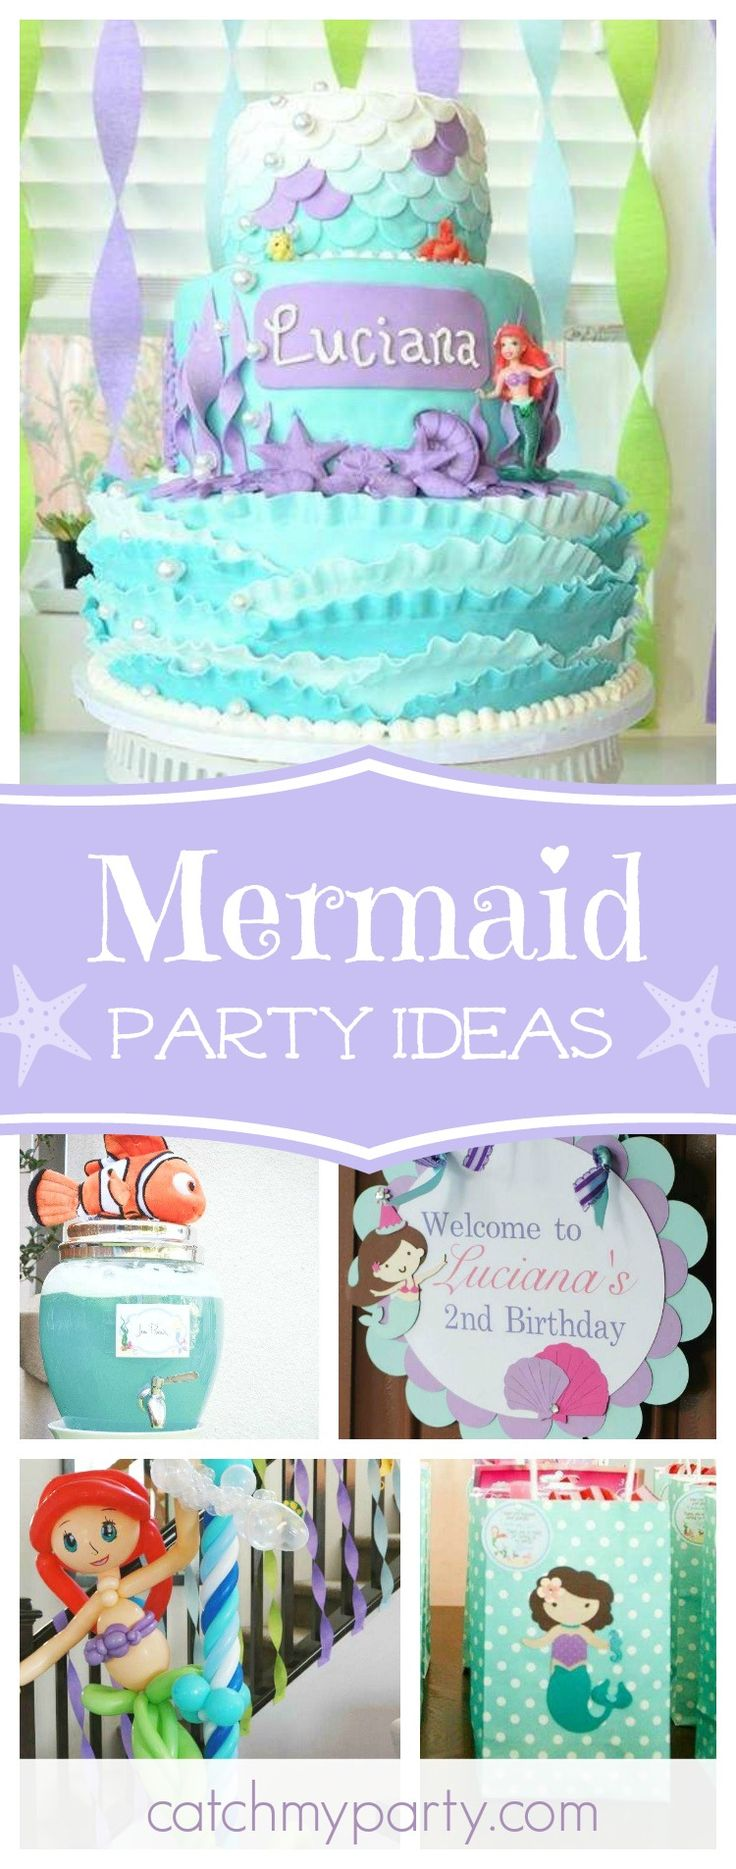 602 best under the sea party ideas images on pinterest under the